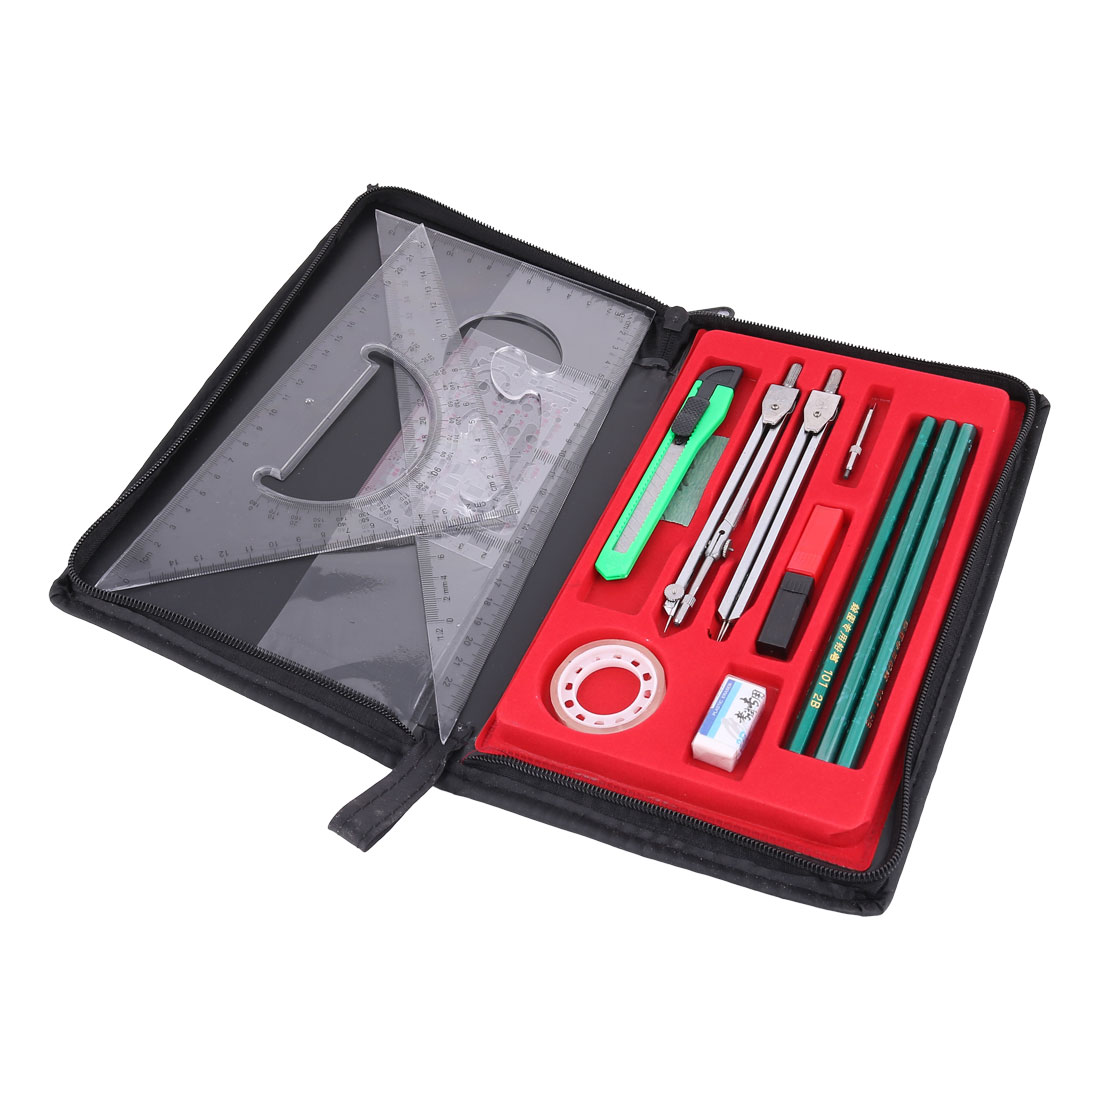 Students Mapper Mechanical Compass Plotter Combination Drawing Tools Set 16 in 1